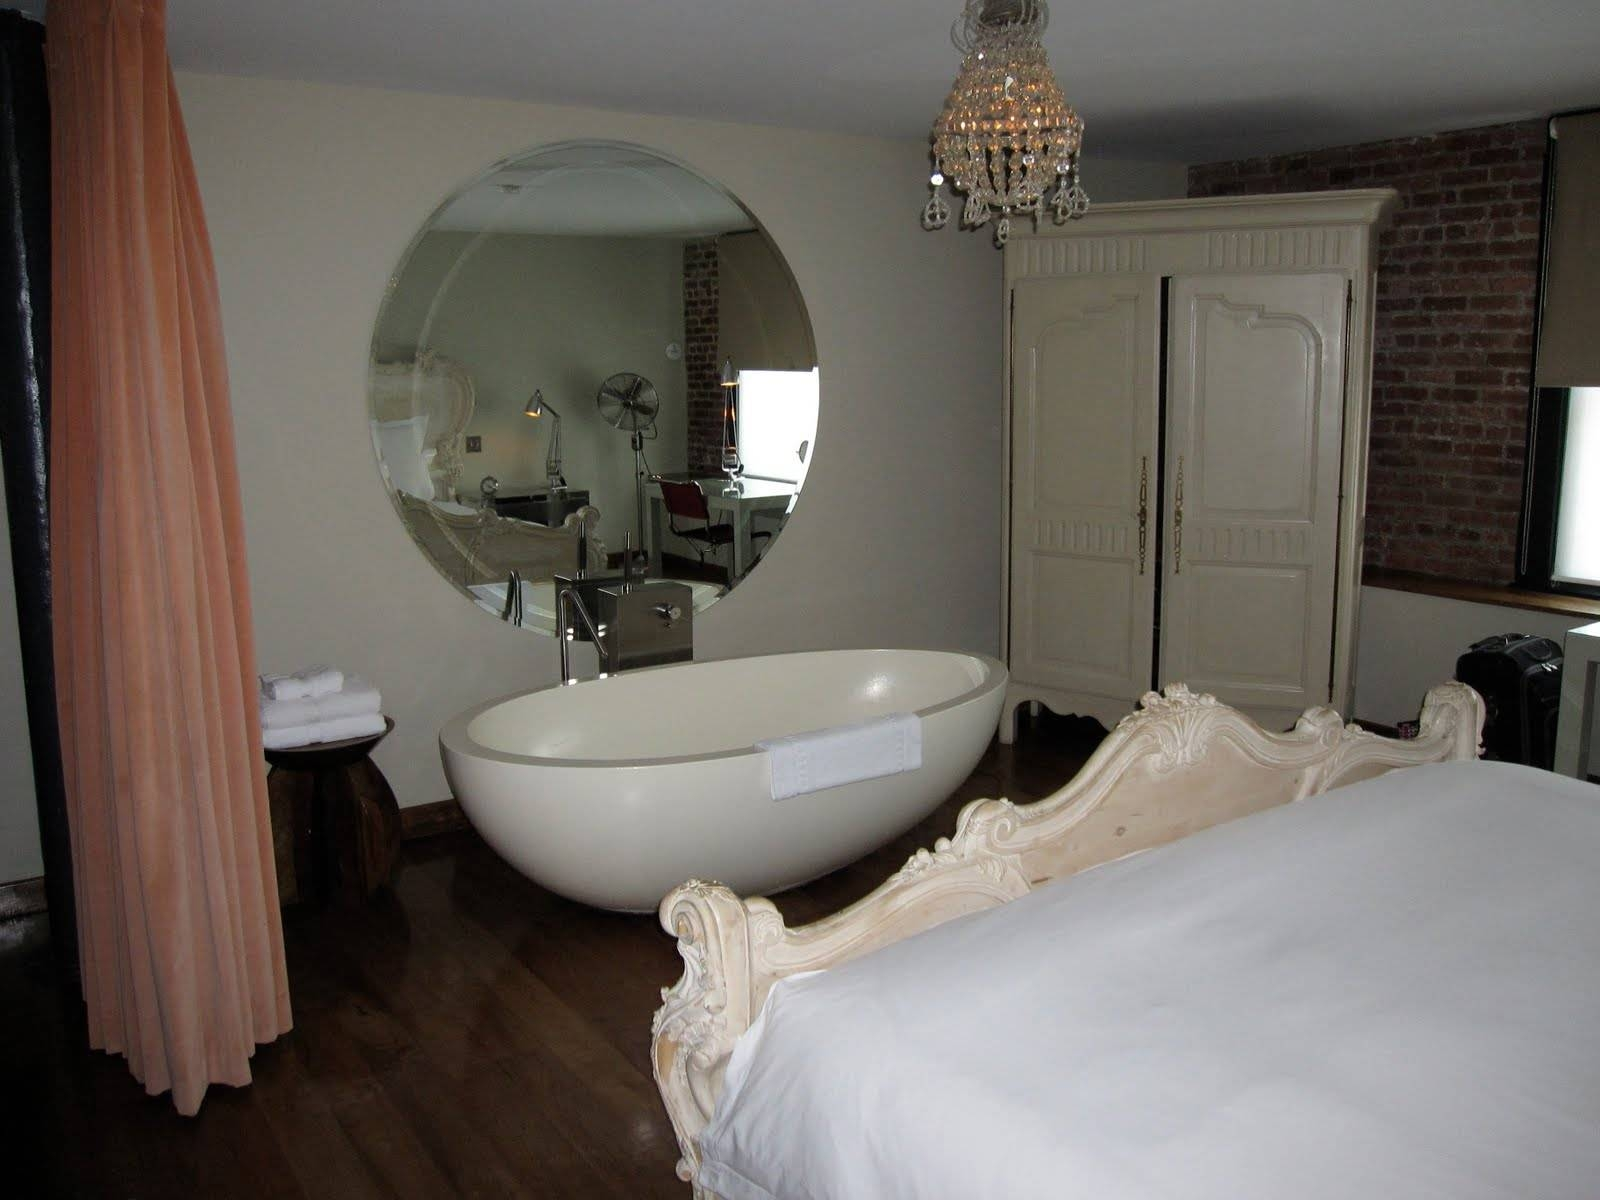 Round Large Mirror In A Bathing Space Inside A Bedroom : Large regarding Round Large Mirrors (Image 21 of 25)